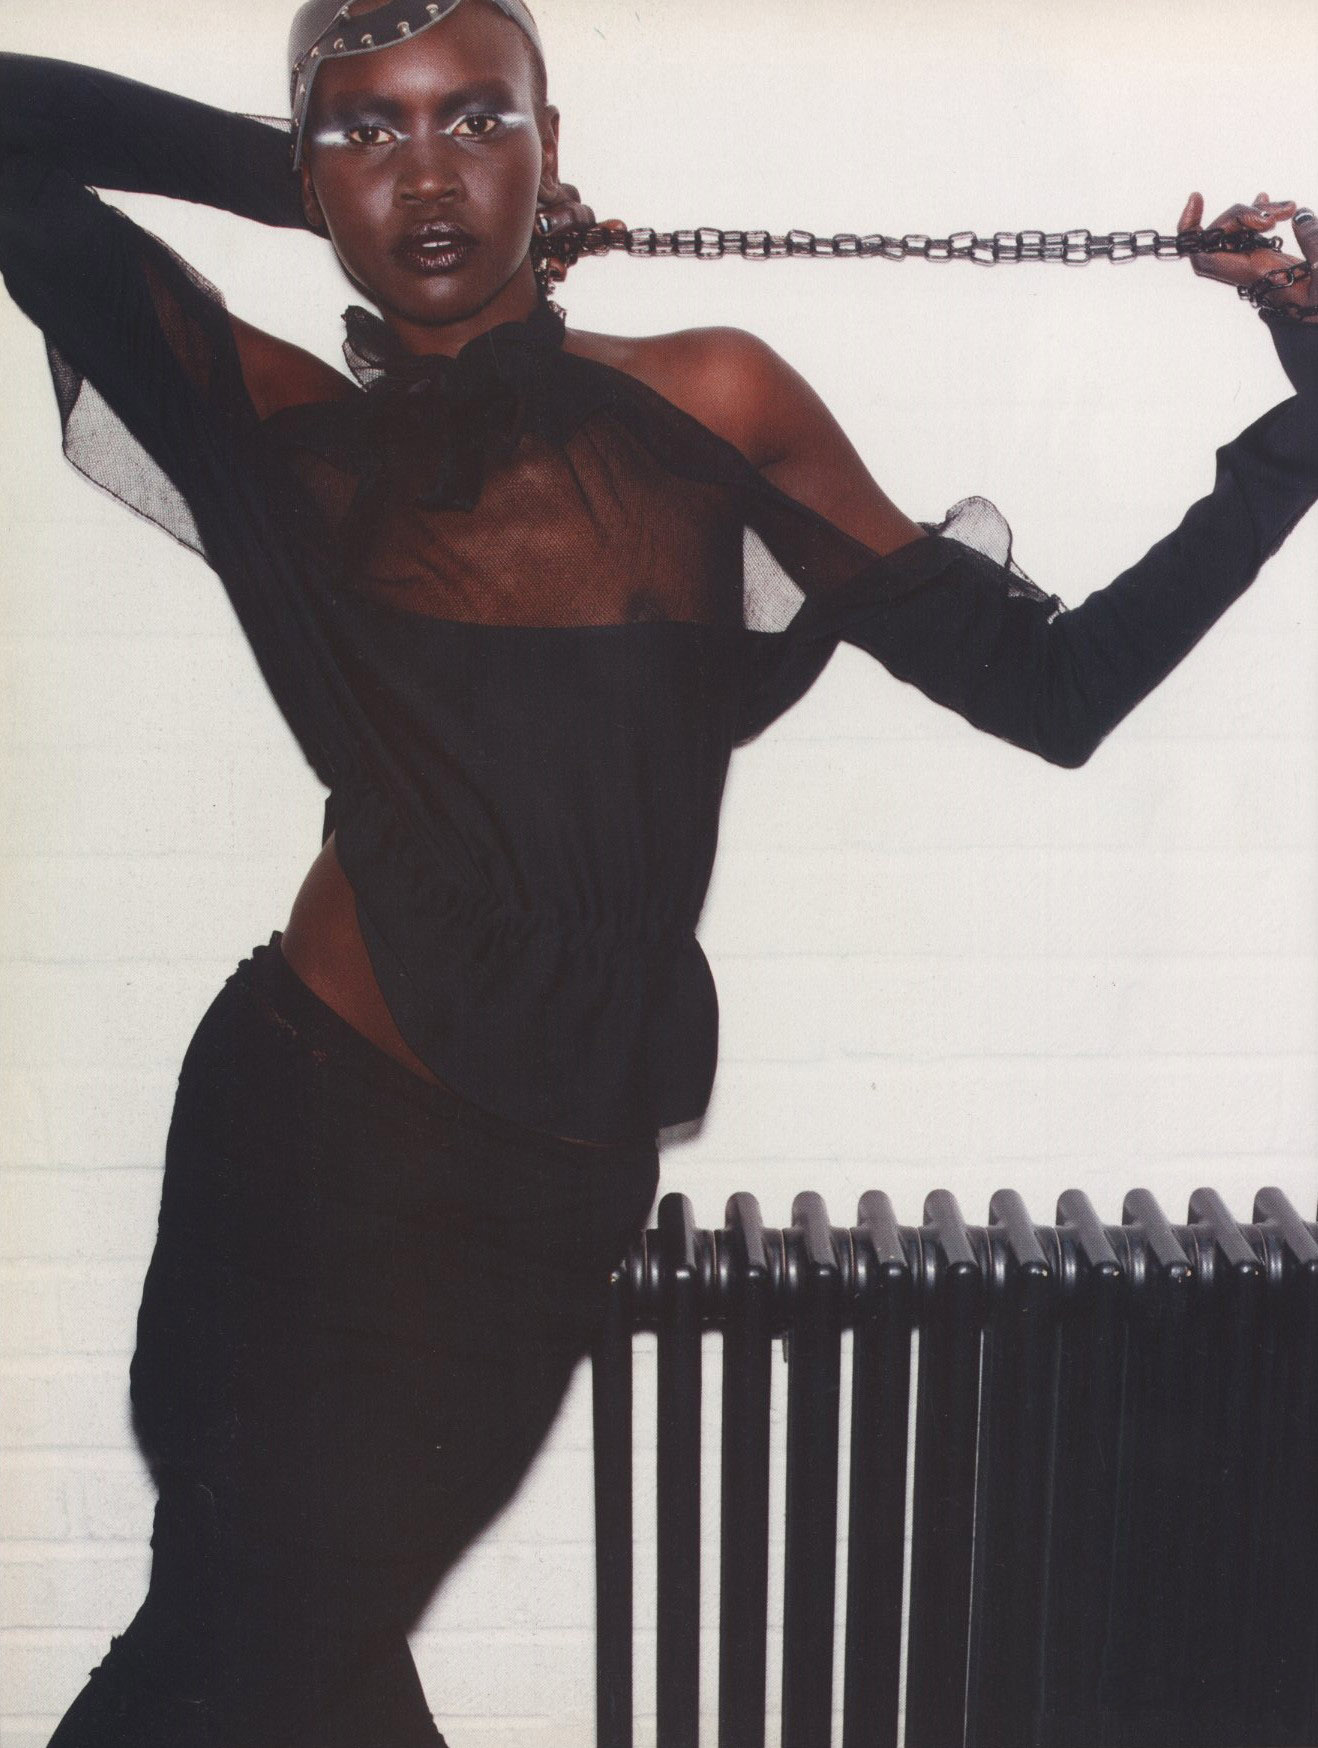 ALEK WEK PHOTOGRAPHY MARIO TESTINO DUTCH #34 2001